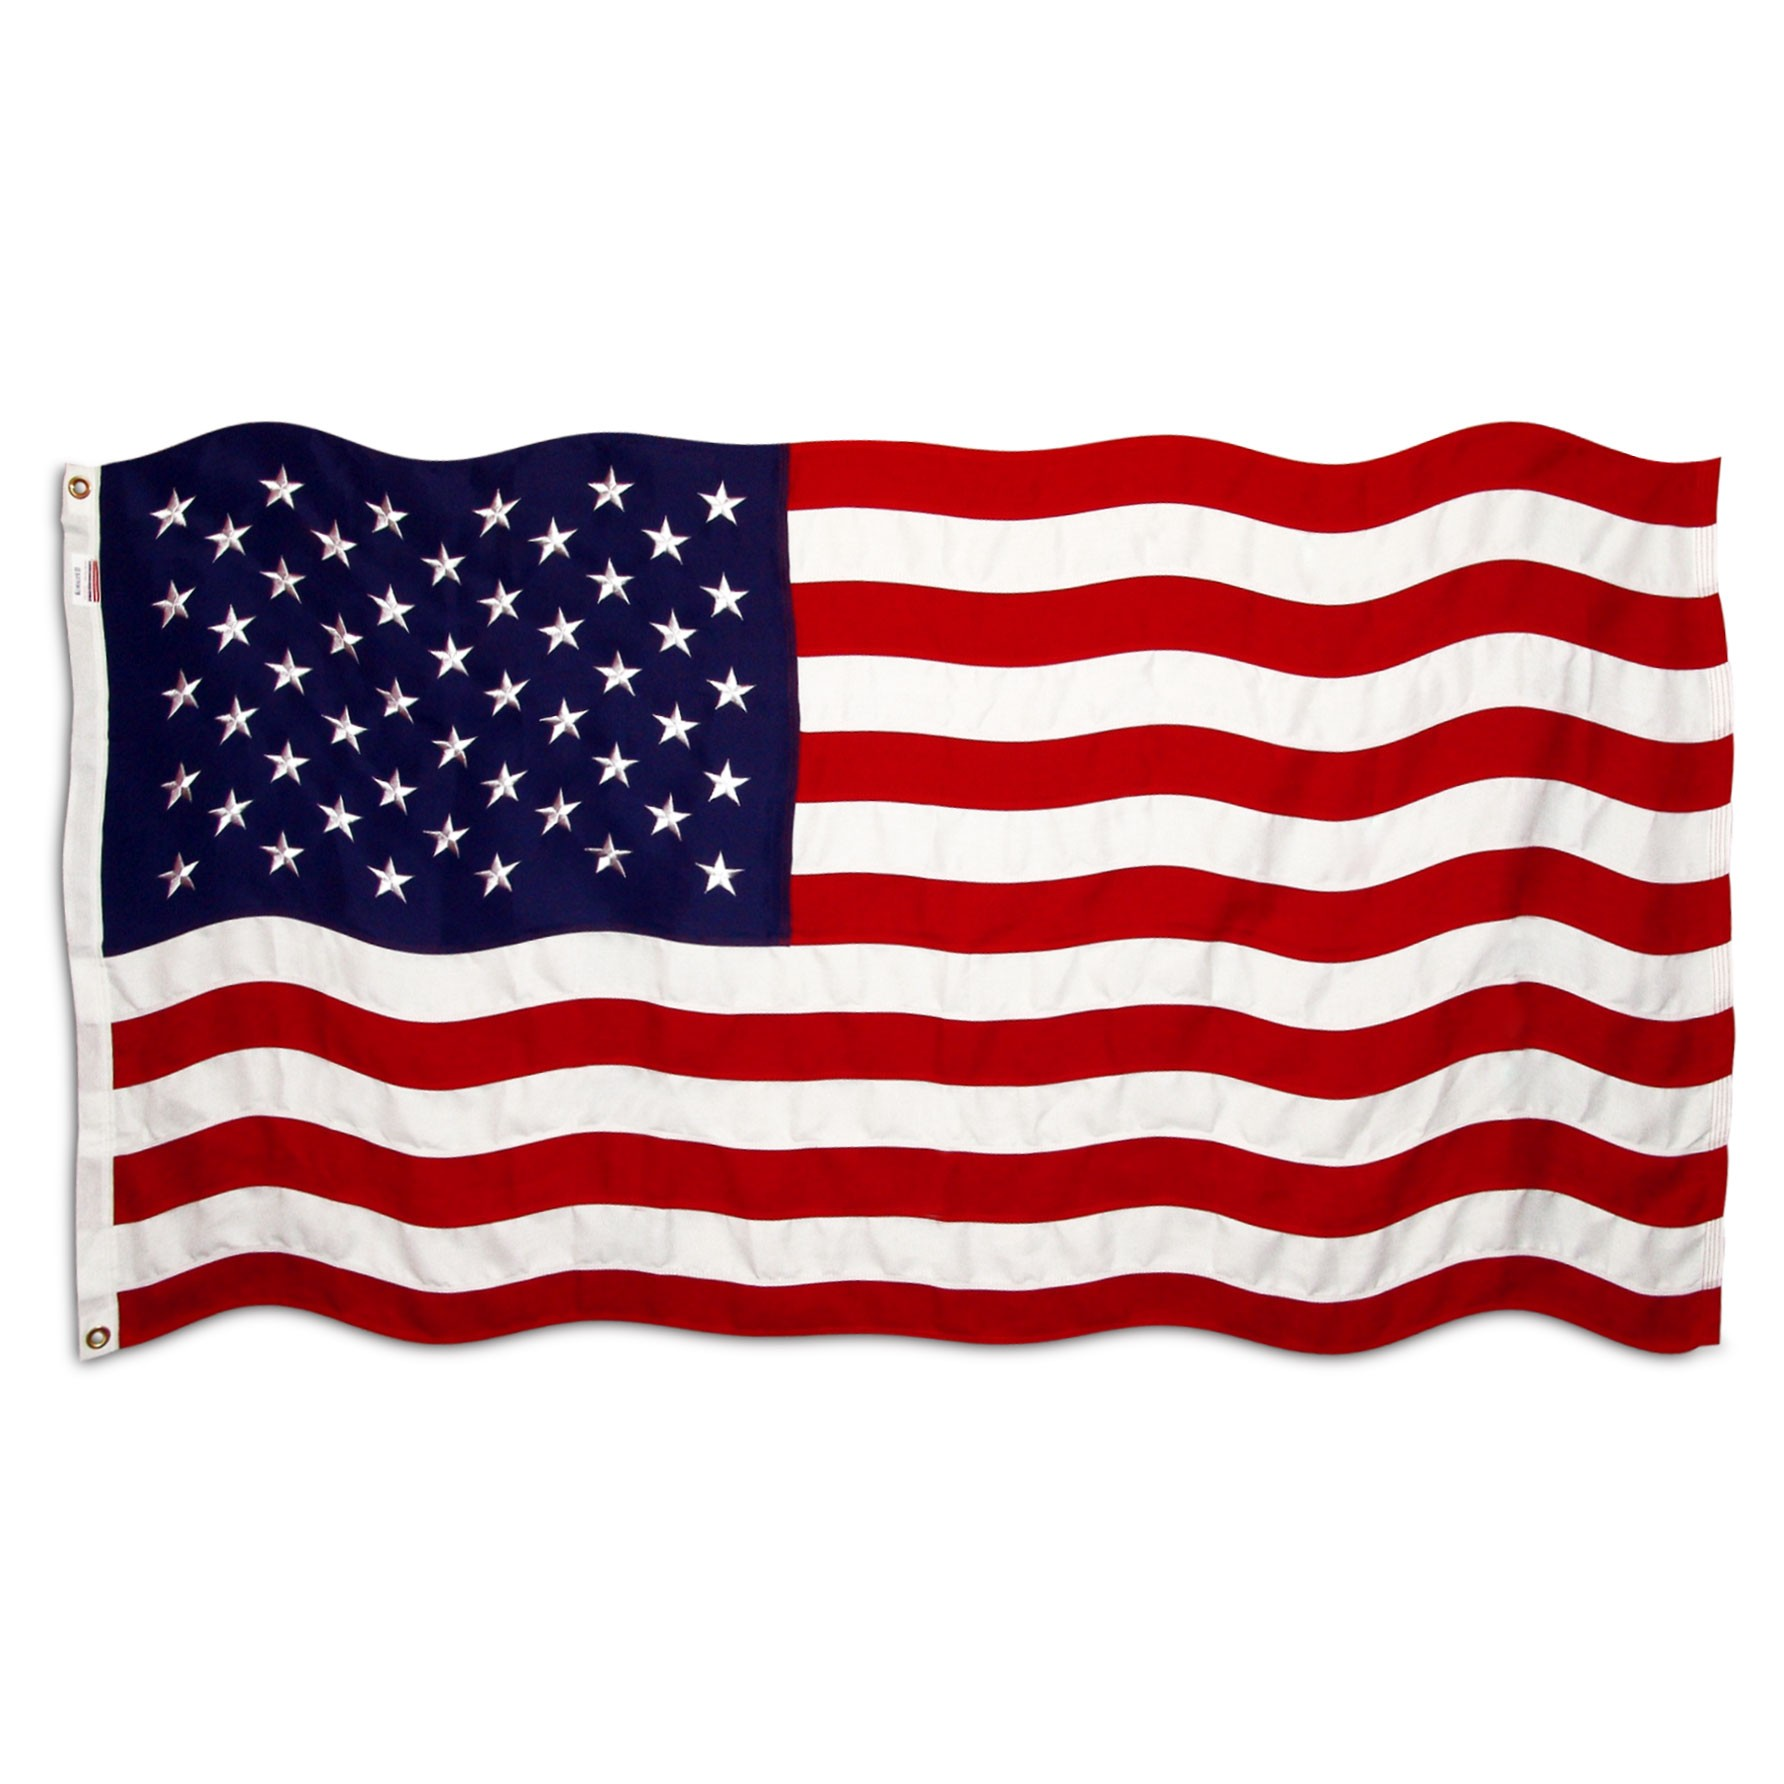 1784x1784 American Flag Clipart Staes